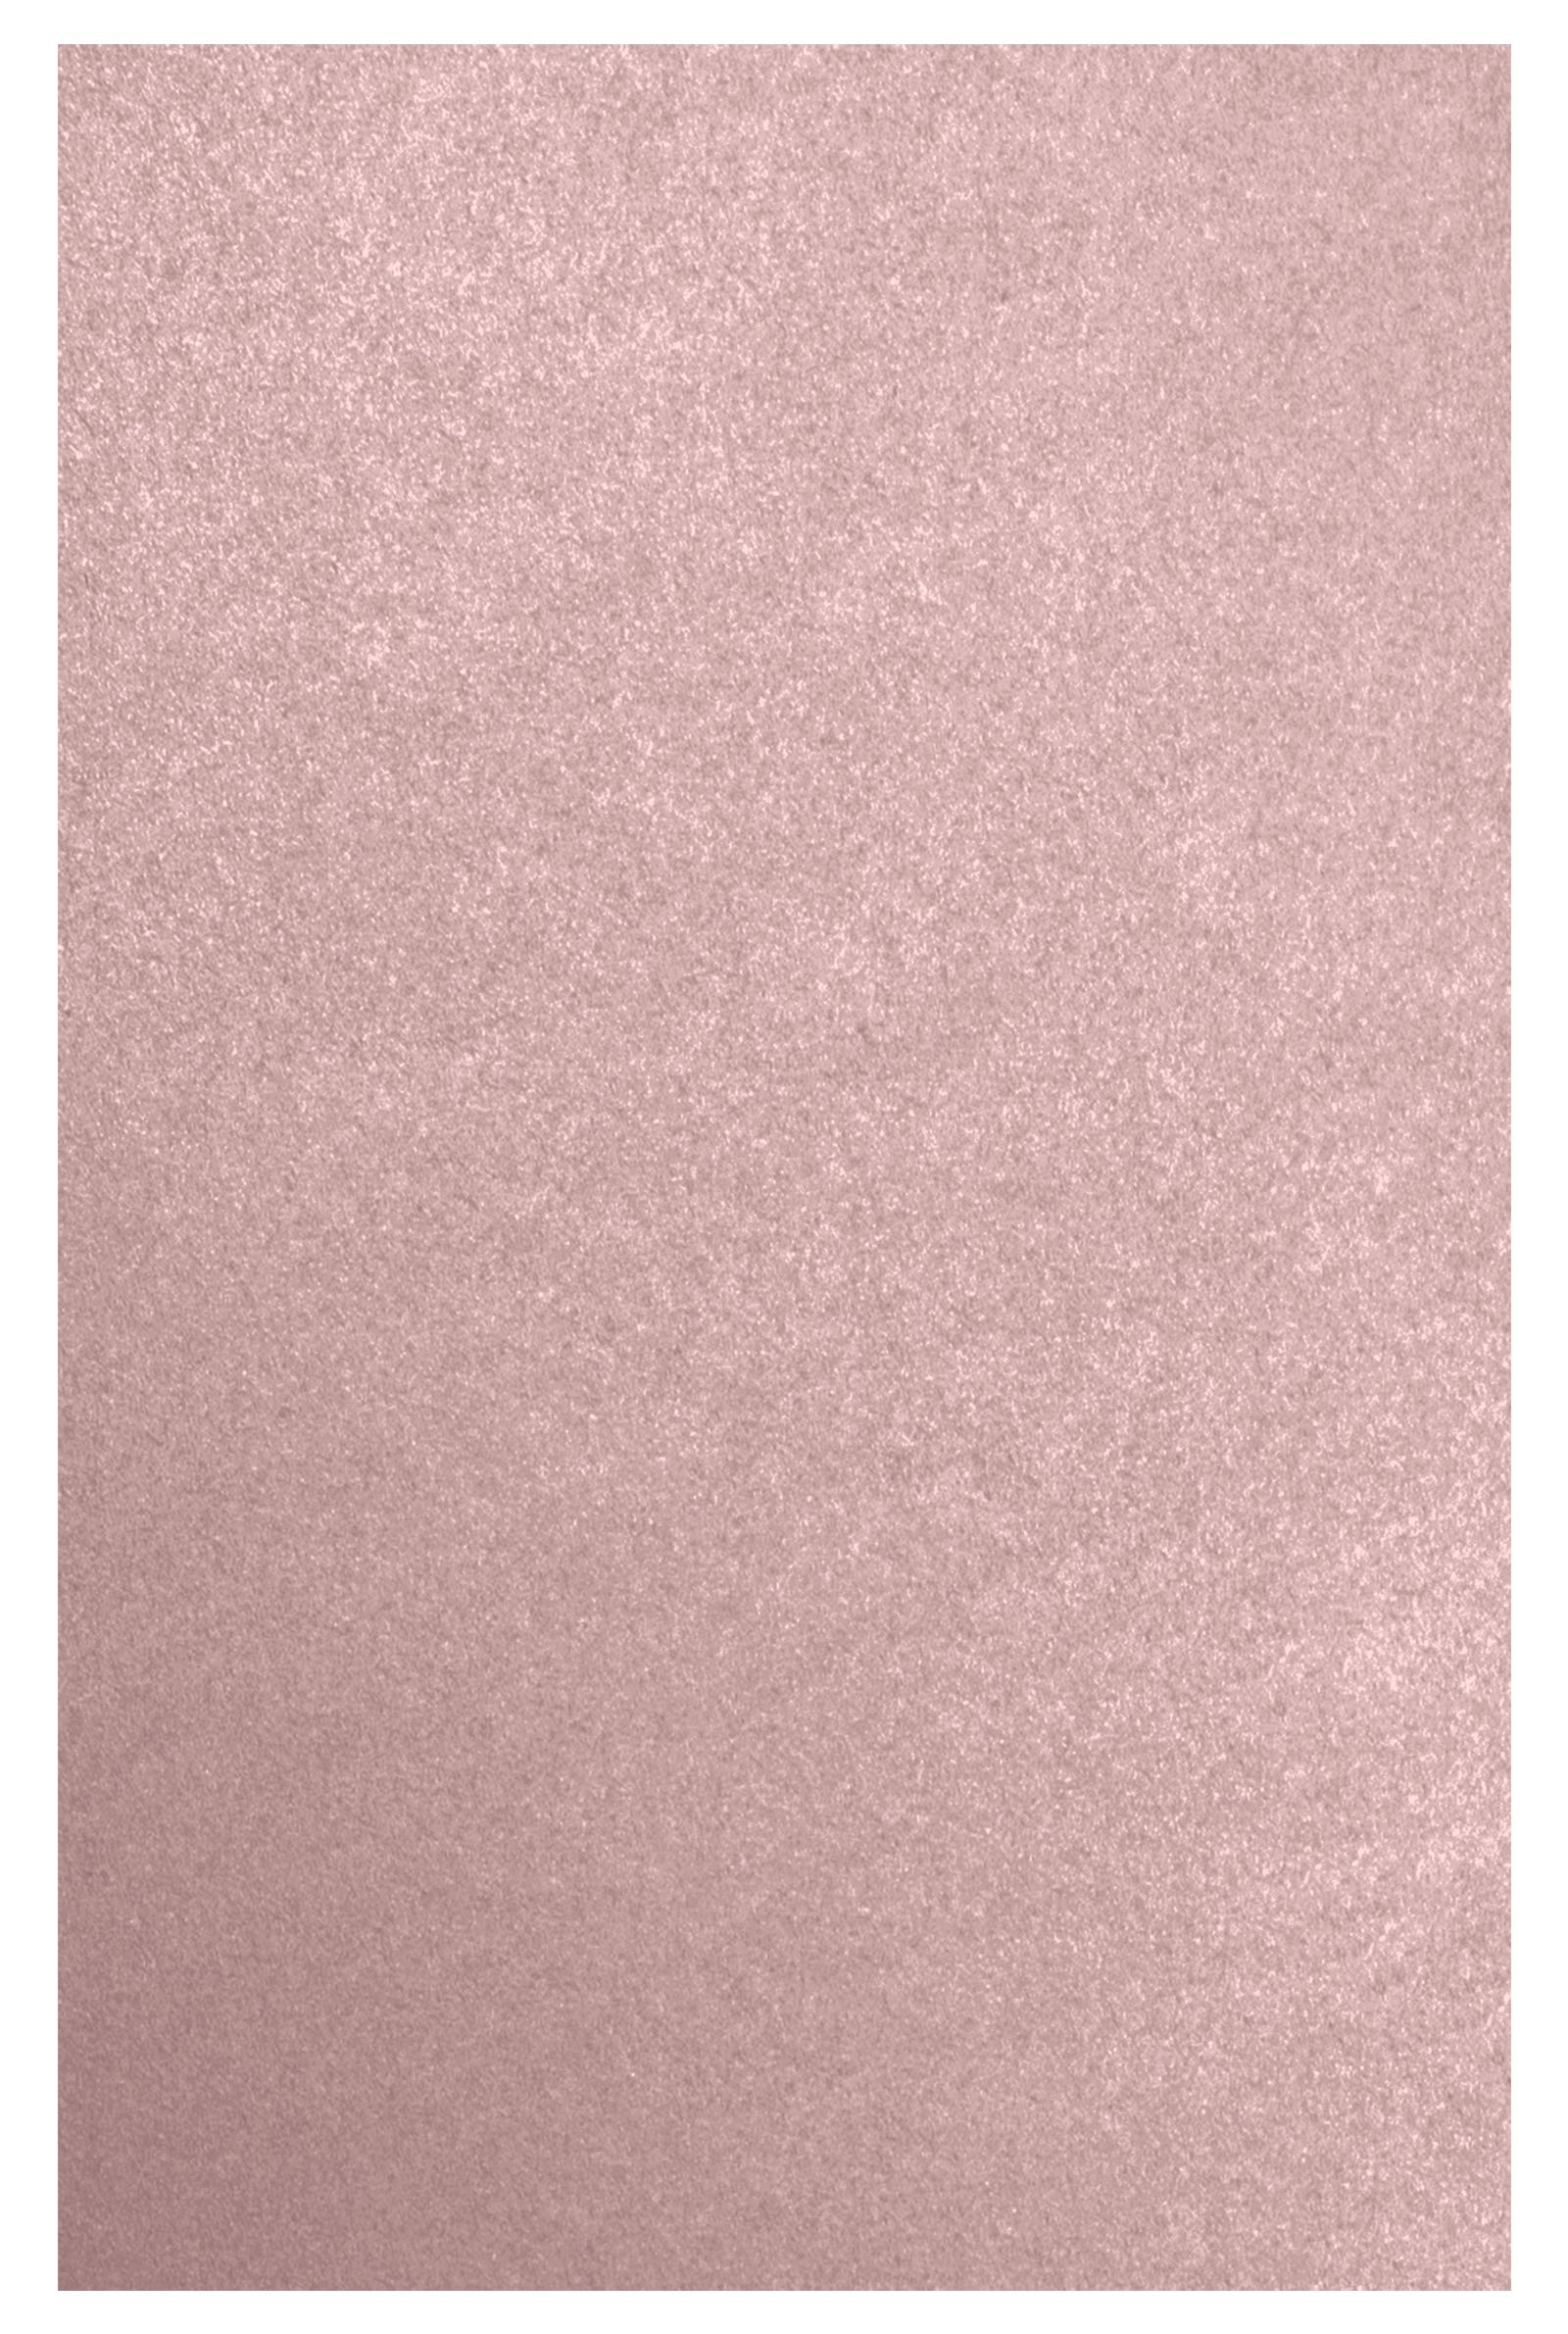 11 x 17 Cardstock - Misty Rose Metallic - Sirio Pearl (50 Qty.) | Perfect for Crafting, Invitations, Scrapbooking, Art Projects, 11x17 Photos, Brochures | 105lb. Cover Weight | 1117-C-M203-50